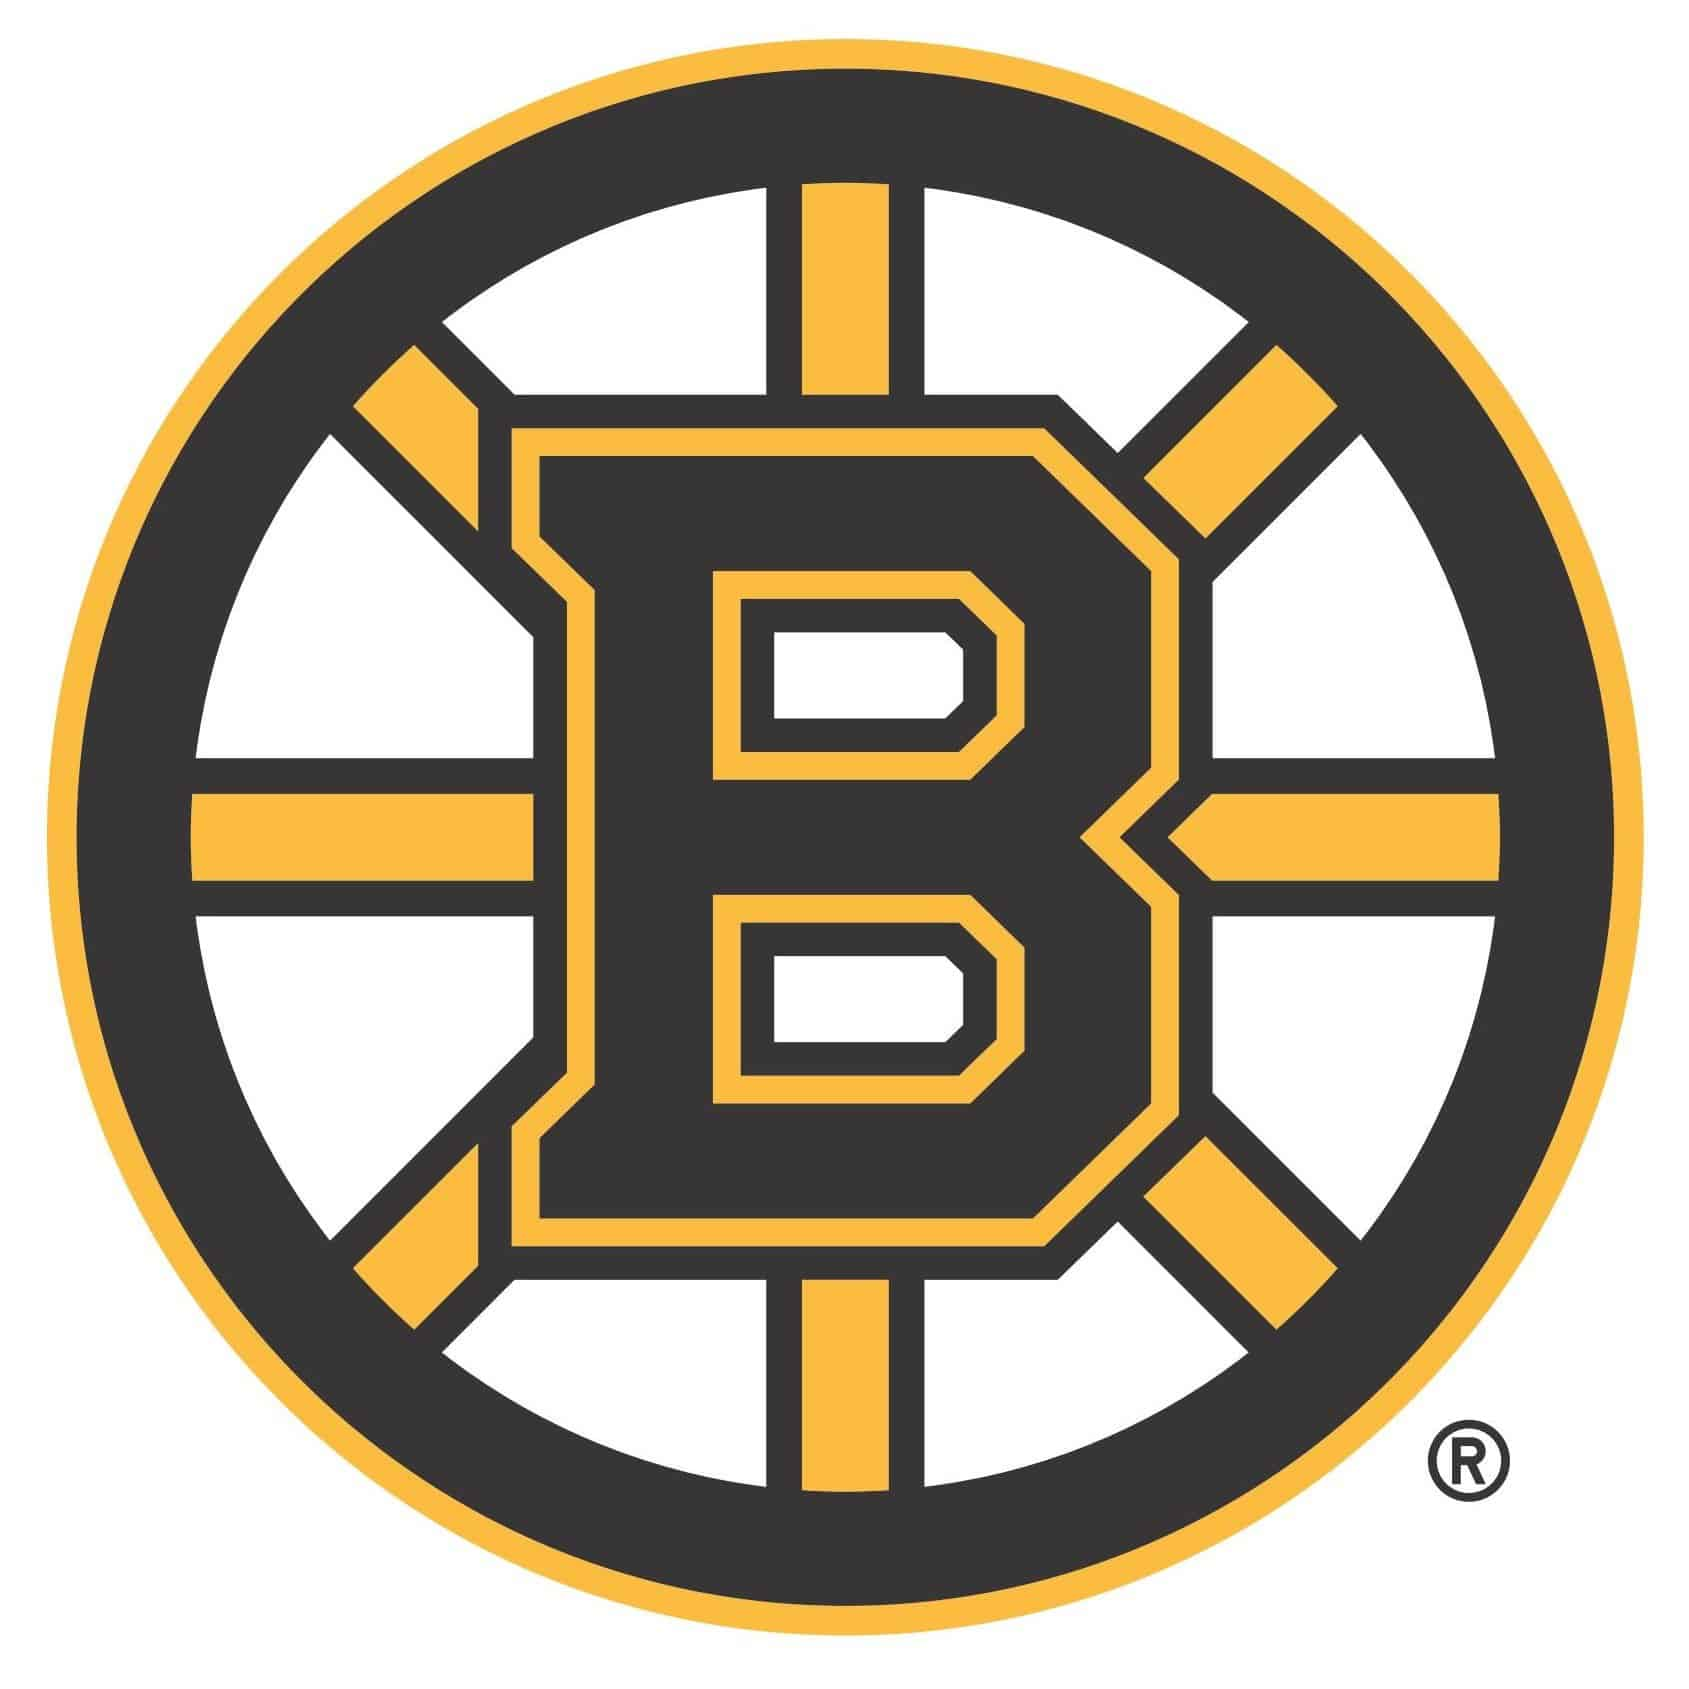 Boston Bruins Logo [NHL] Vector EPS Free Download, Logo, Icons, Brand Emblems